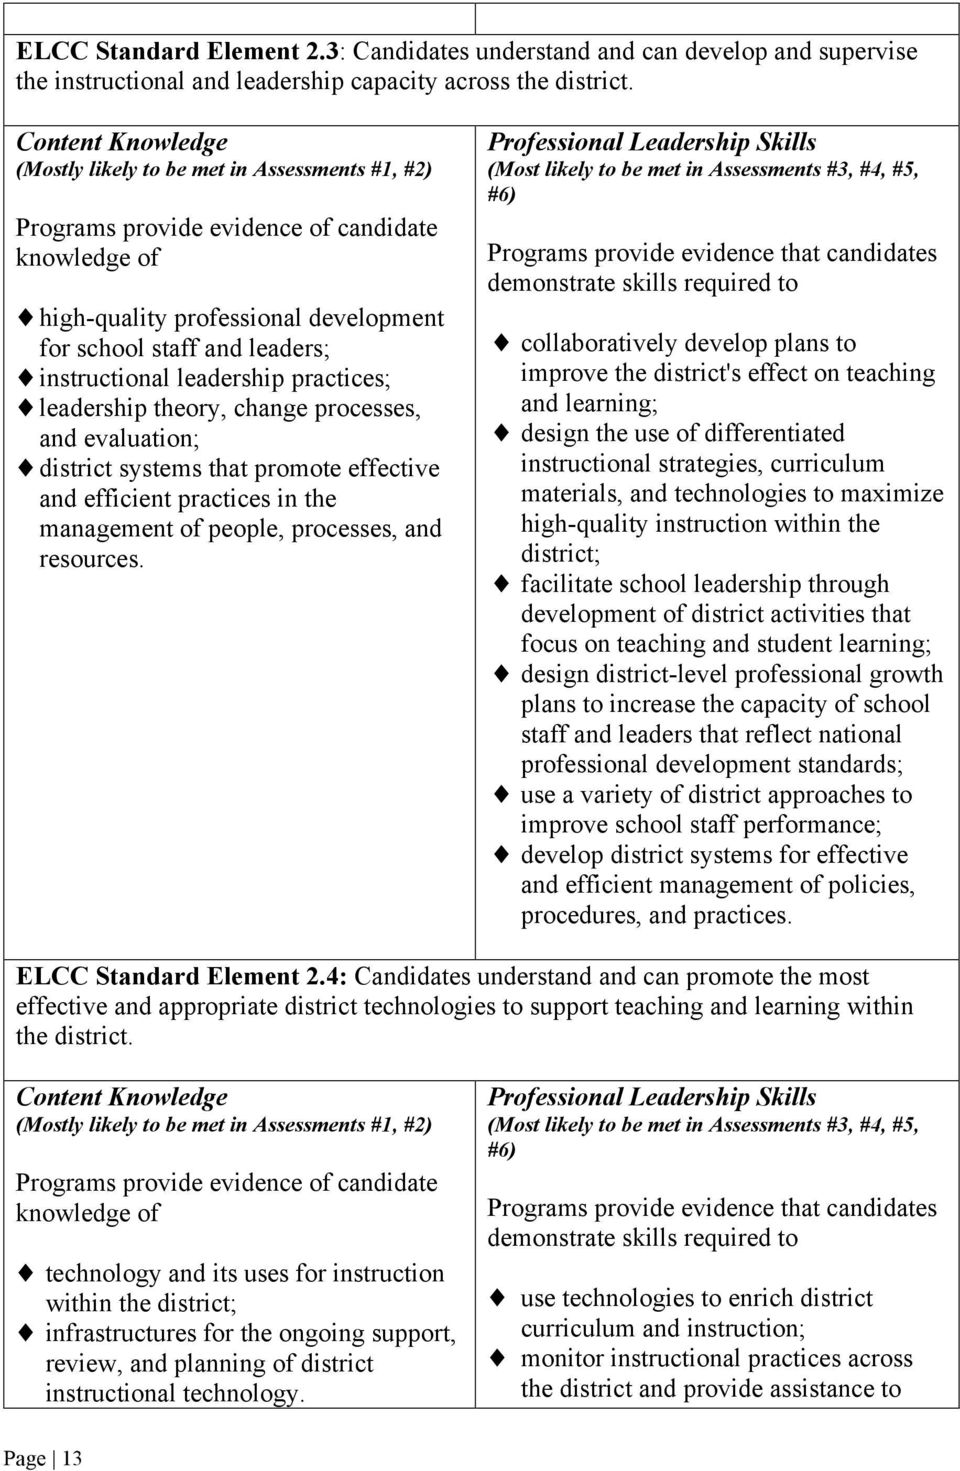 leadership practices; leadership theory, change processes, and evaluation; district systems that promote effective and efficient practices in the management of people, processes, and resources.